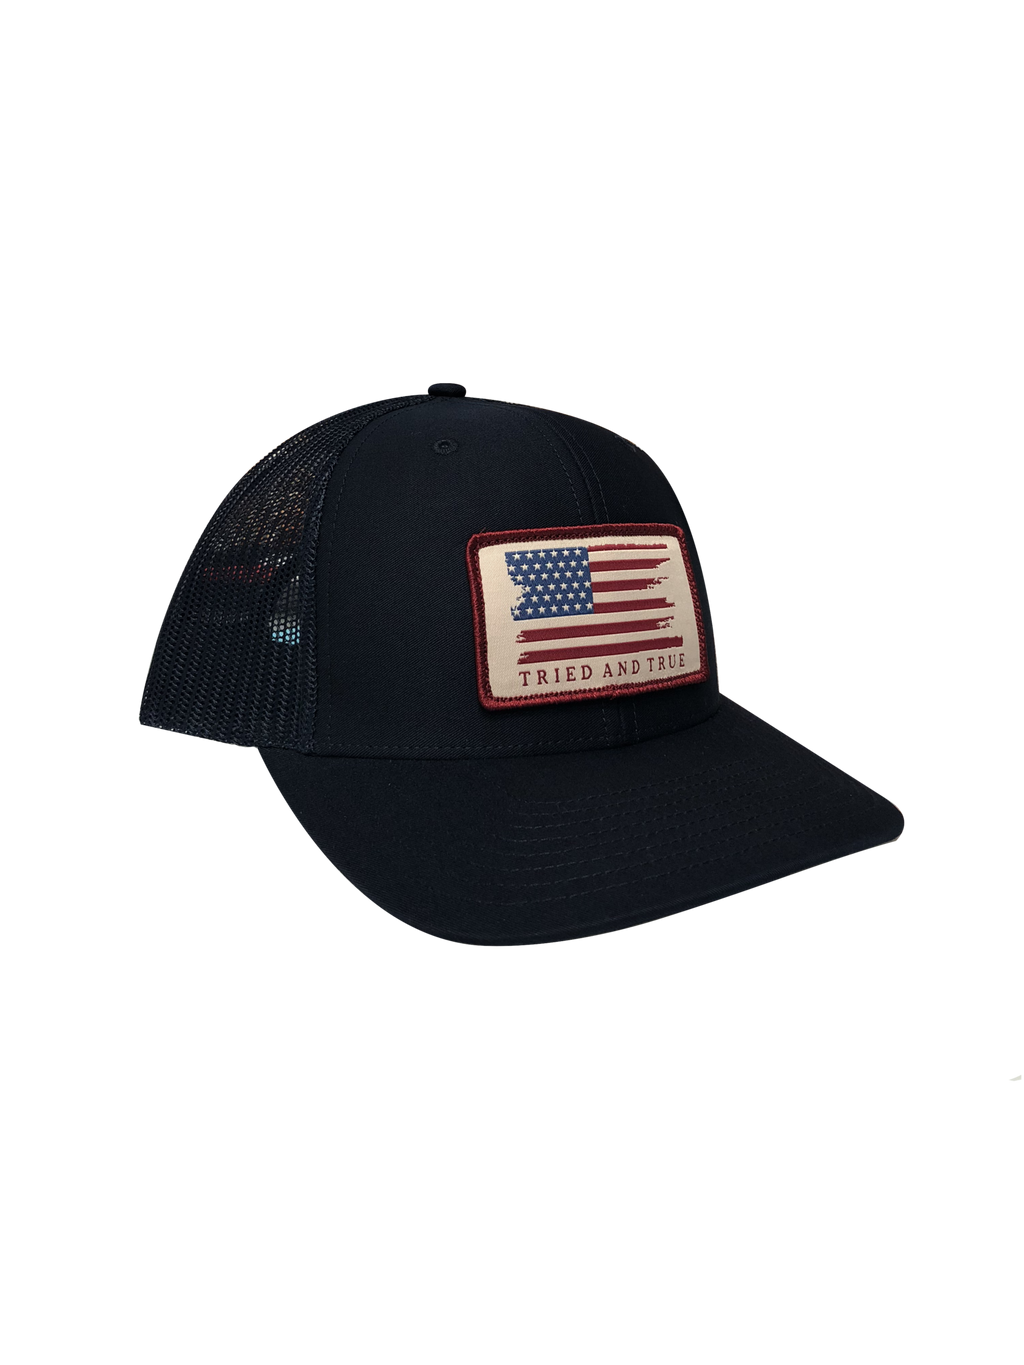 Tried and True 'Flag' Woven Patch Trucker Hat -Navy